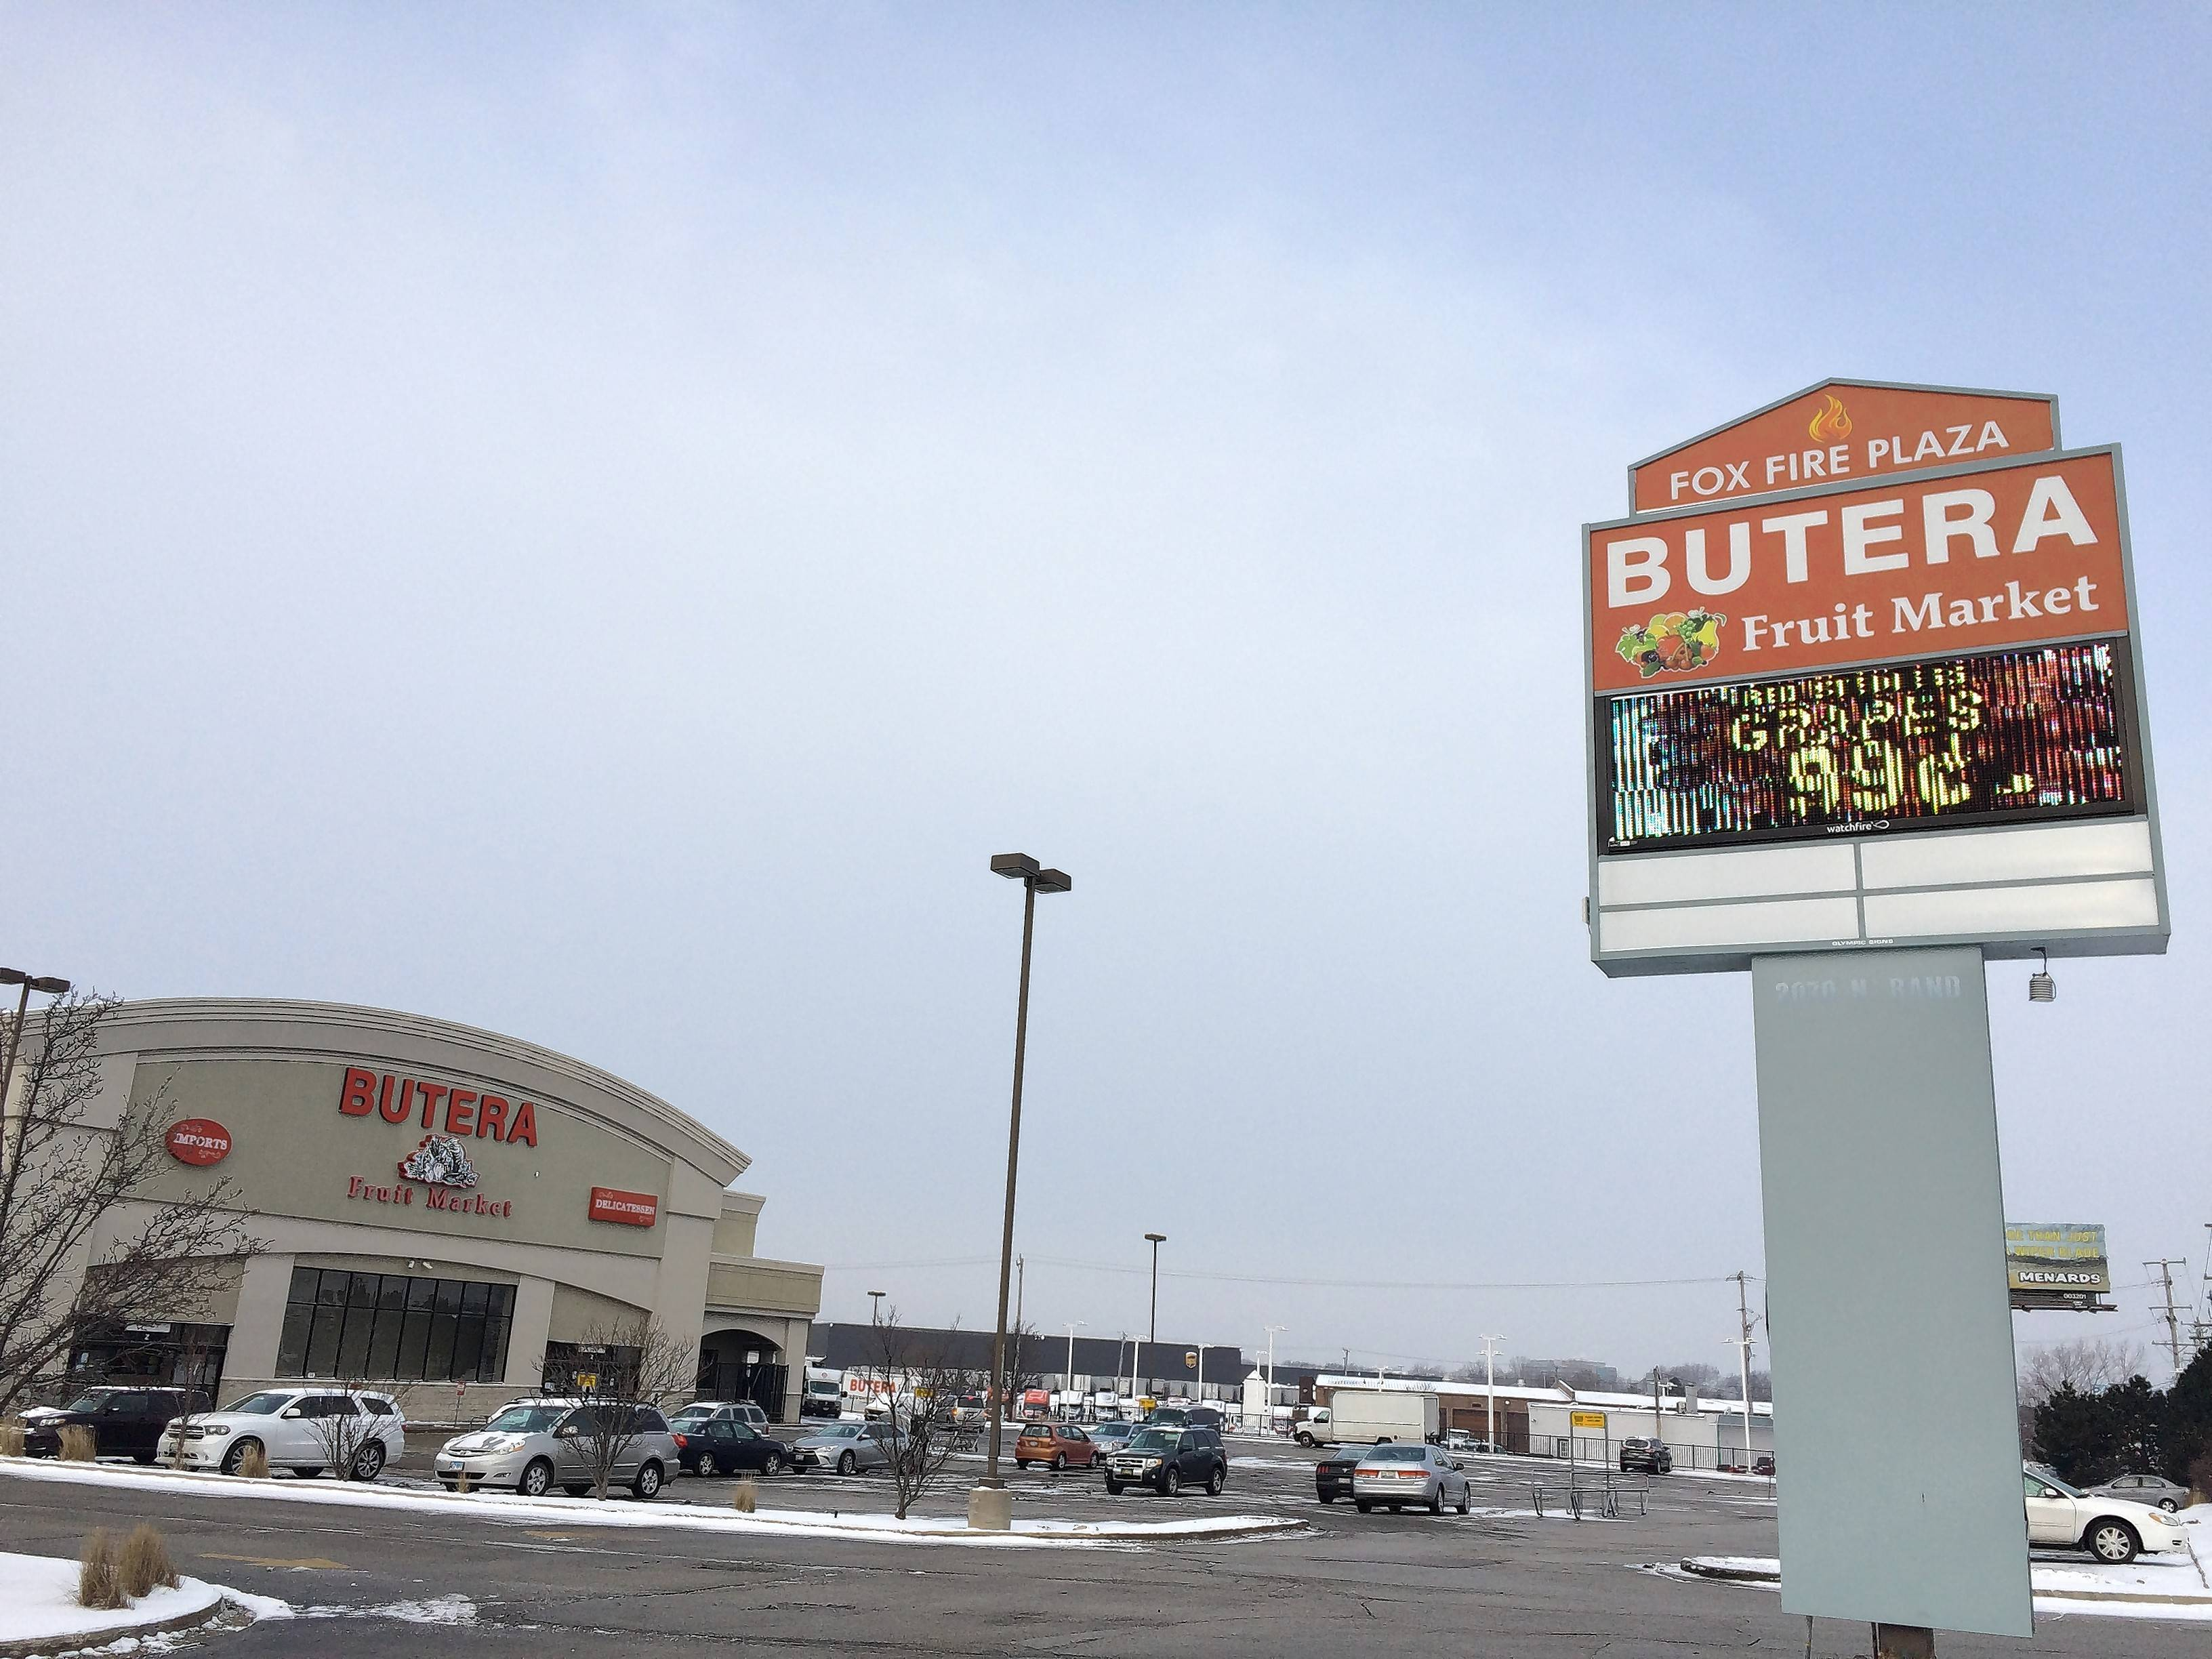 A new electronic message board sign was built at Butera Fruit Market at Rand and Hicks roads in Palatine after a building permit was erroneously granted by the village earlier this year. The Palatine village council recently approved a special-use permit that Butera needed for the sign.